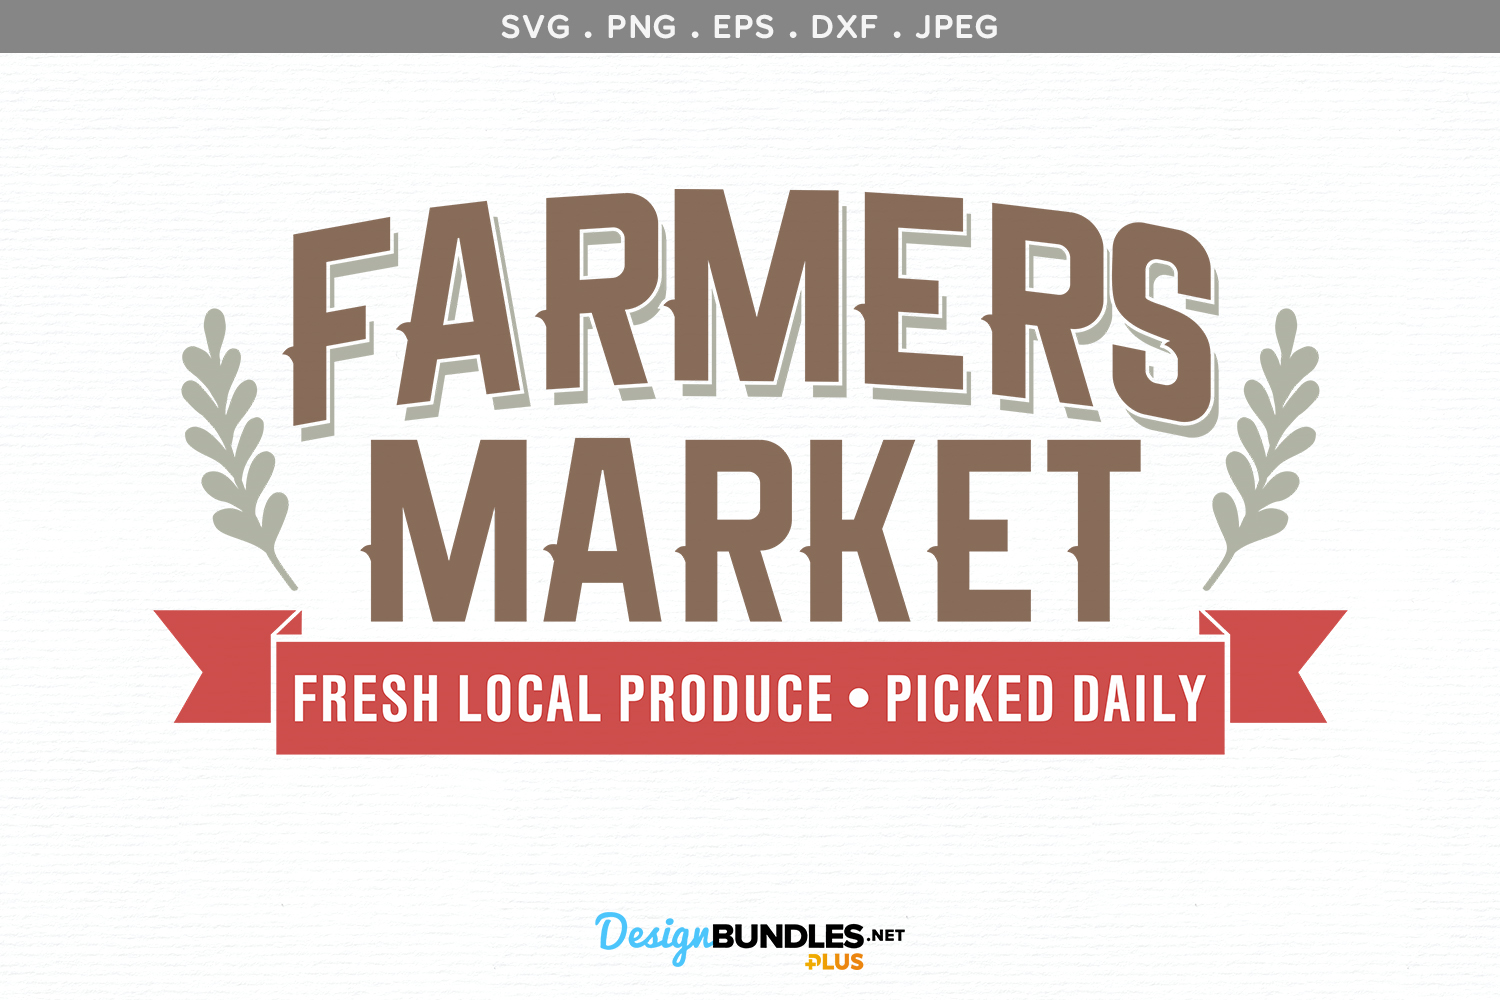 Farmers Market Fresh Local Produce - svg & printable example image 2